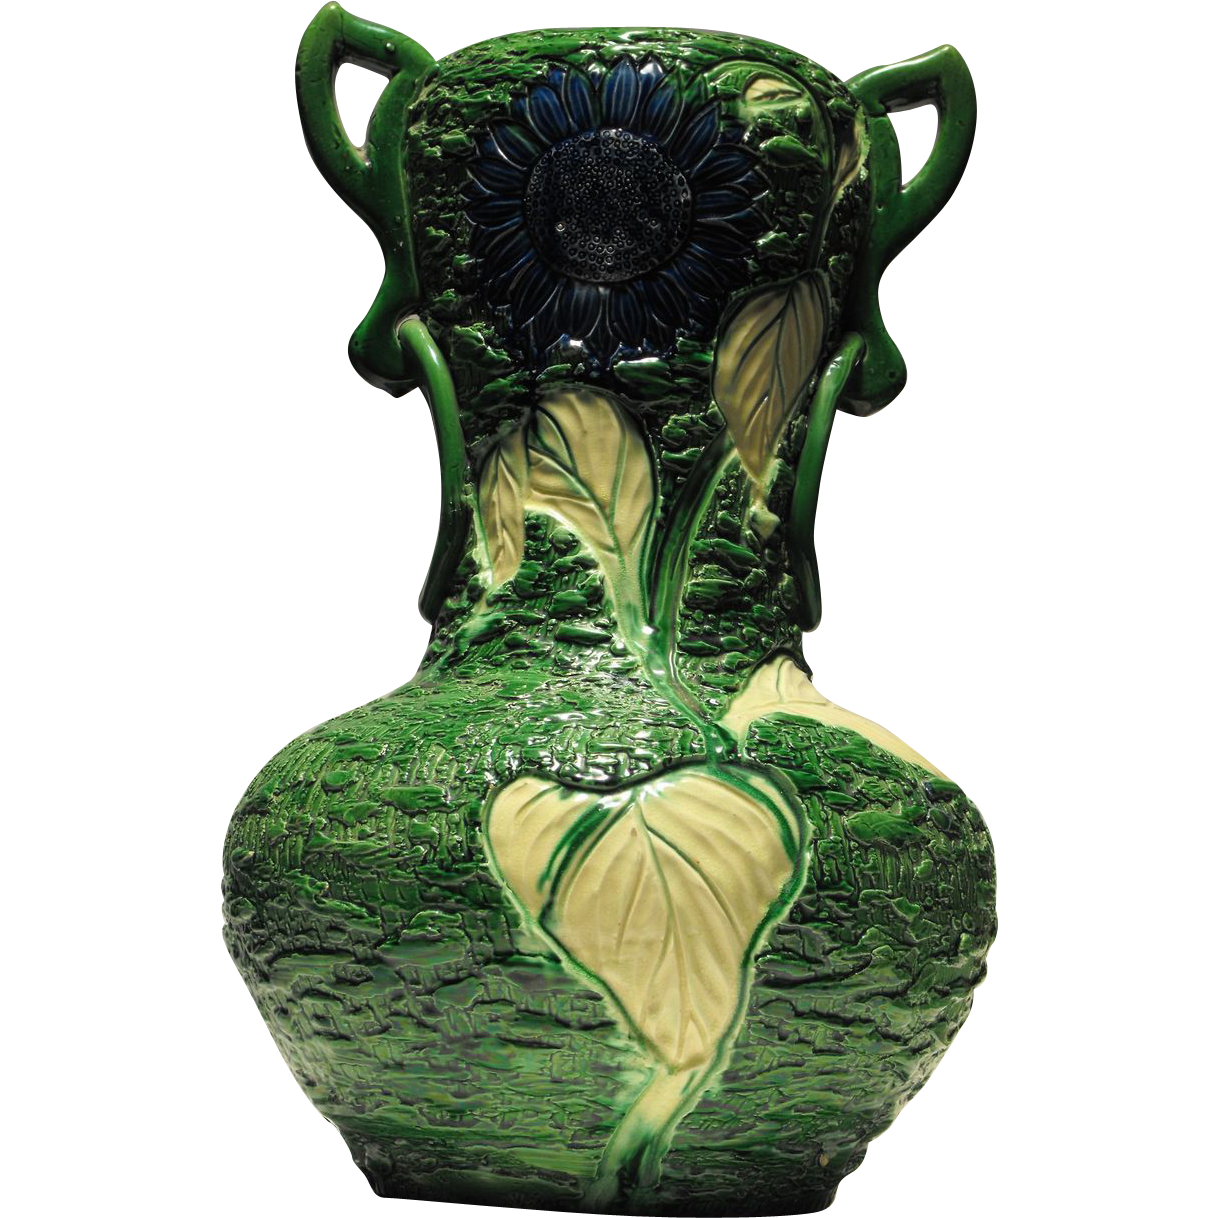 Monumental Handcrafted Awaji Vase with Unusual Blue Sunflower Decoration